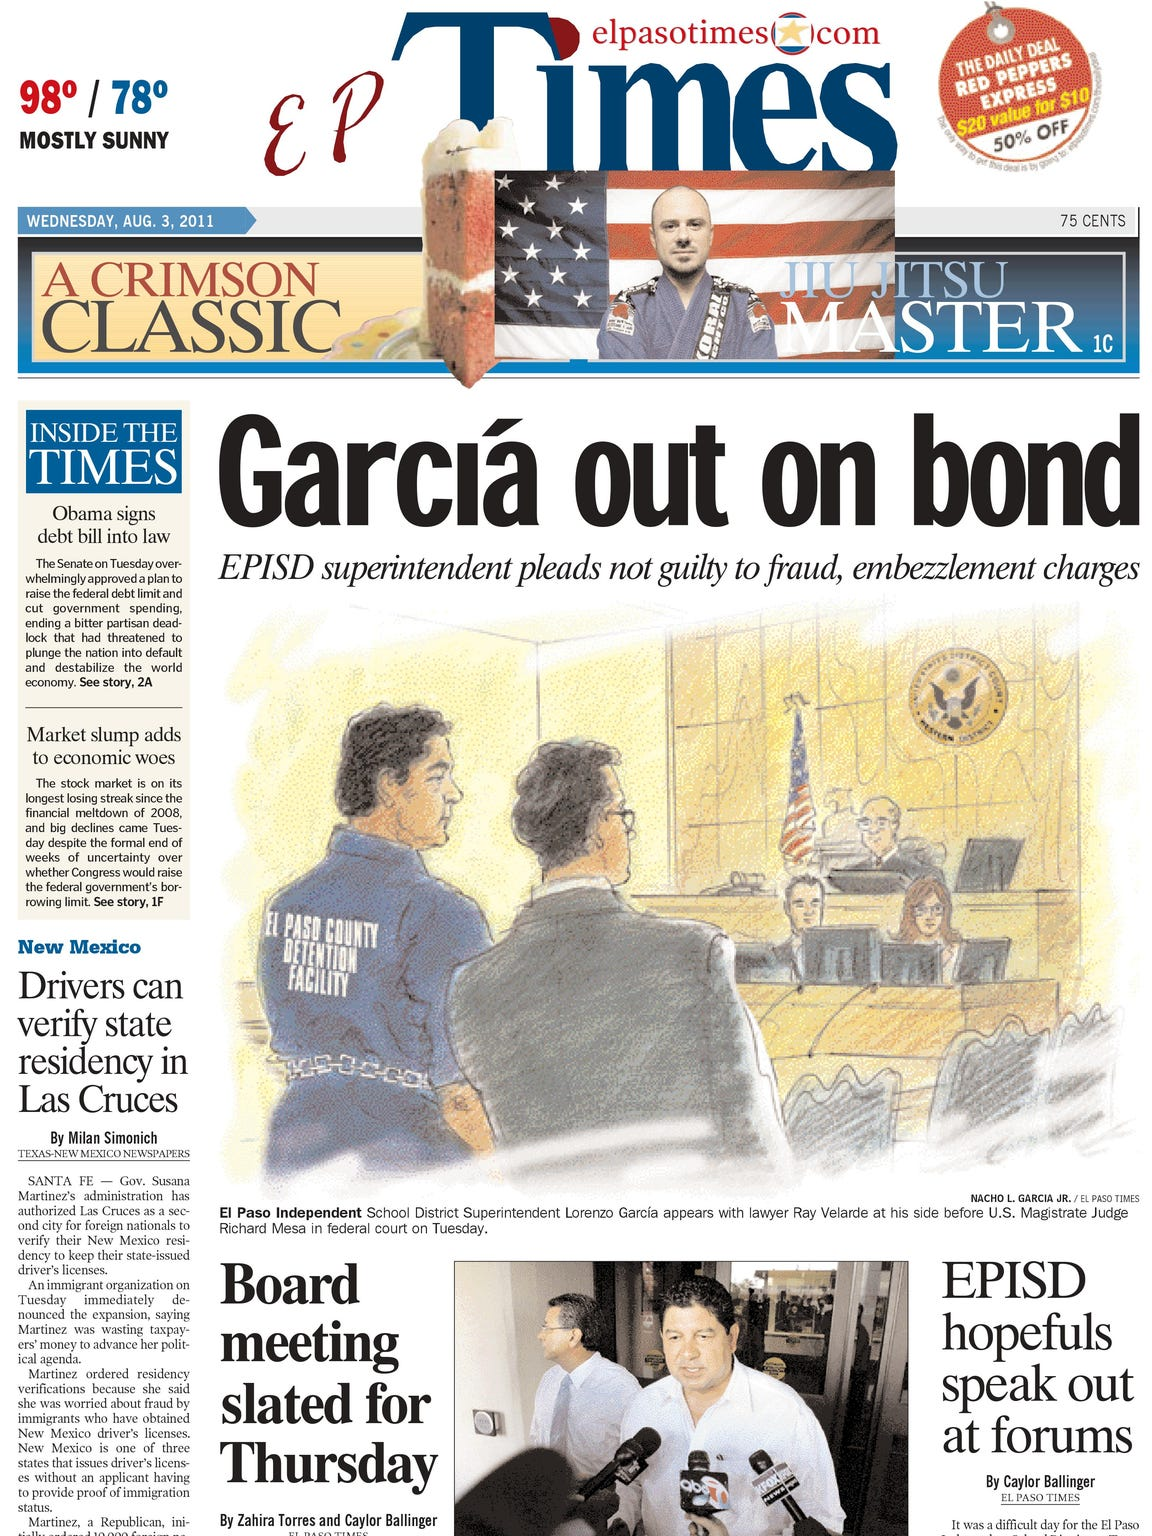 The El Paso Times' front page from Wednesday, Aug.